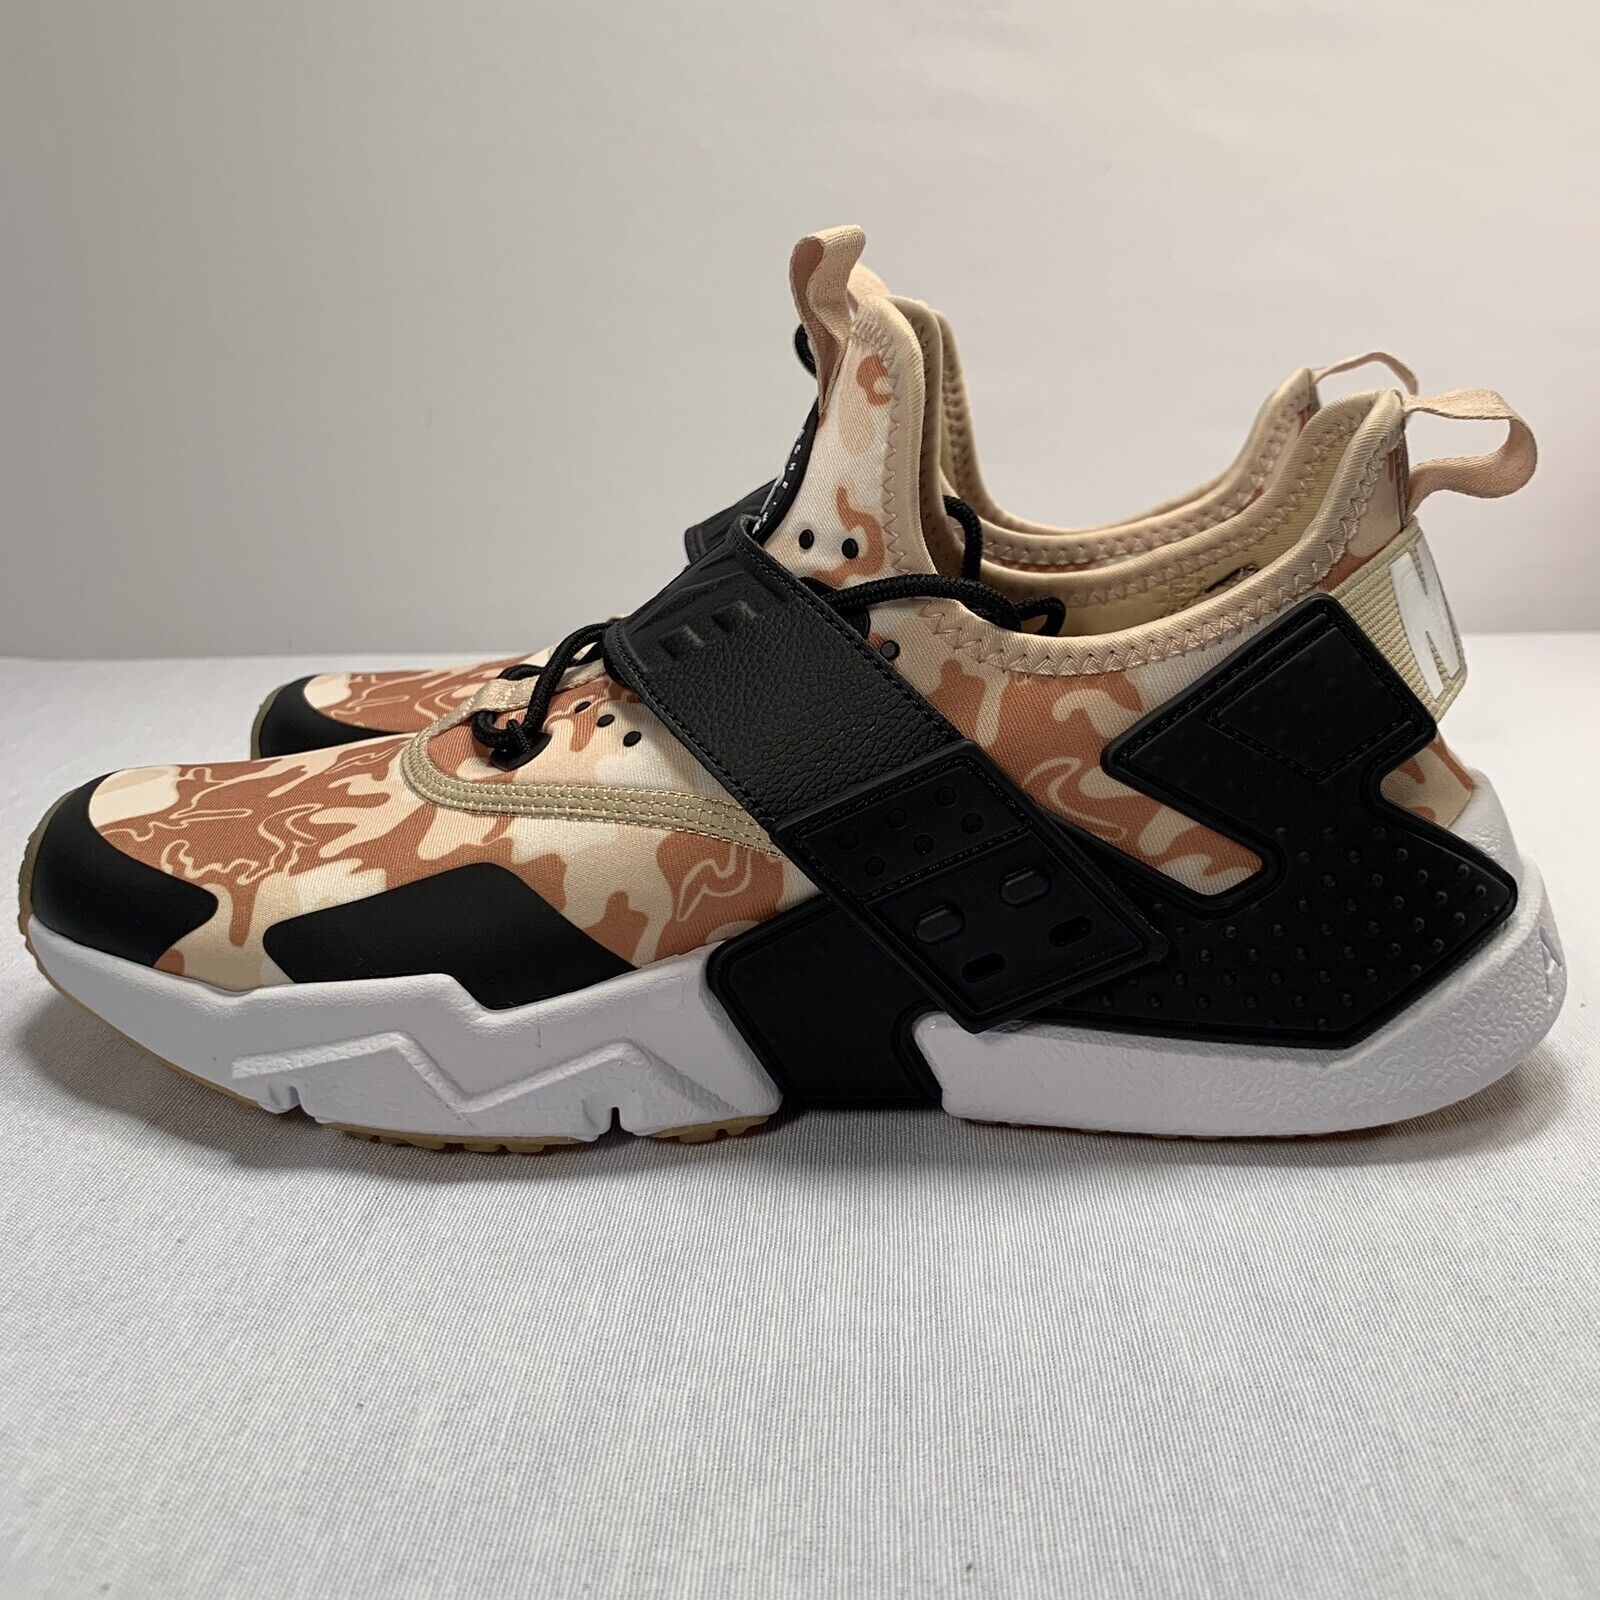 Nike Air Huarache Drift Premium shoes Limited Edition AH7335-200 Men's Size 9